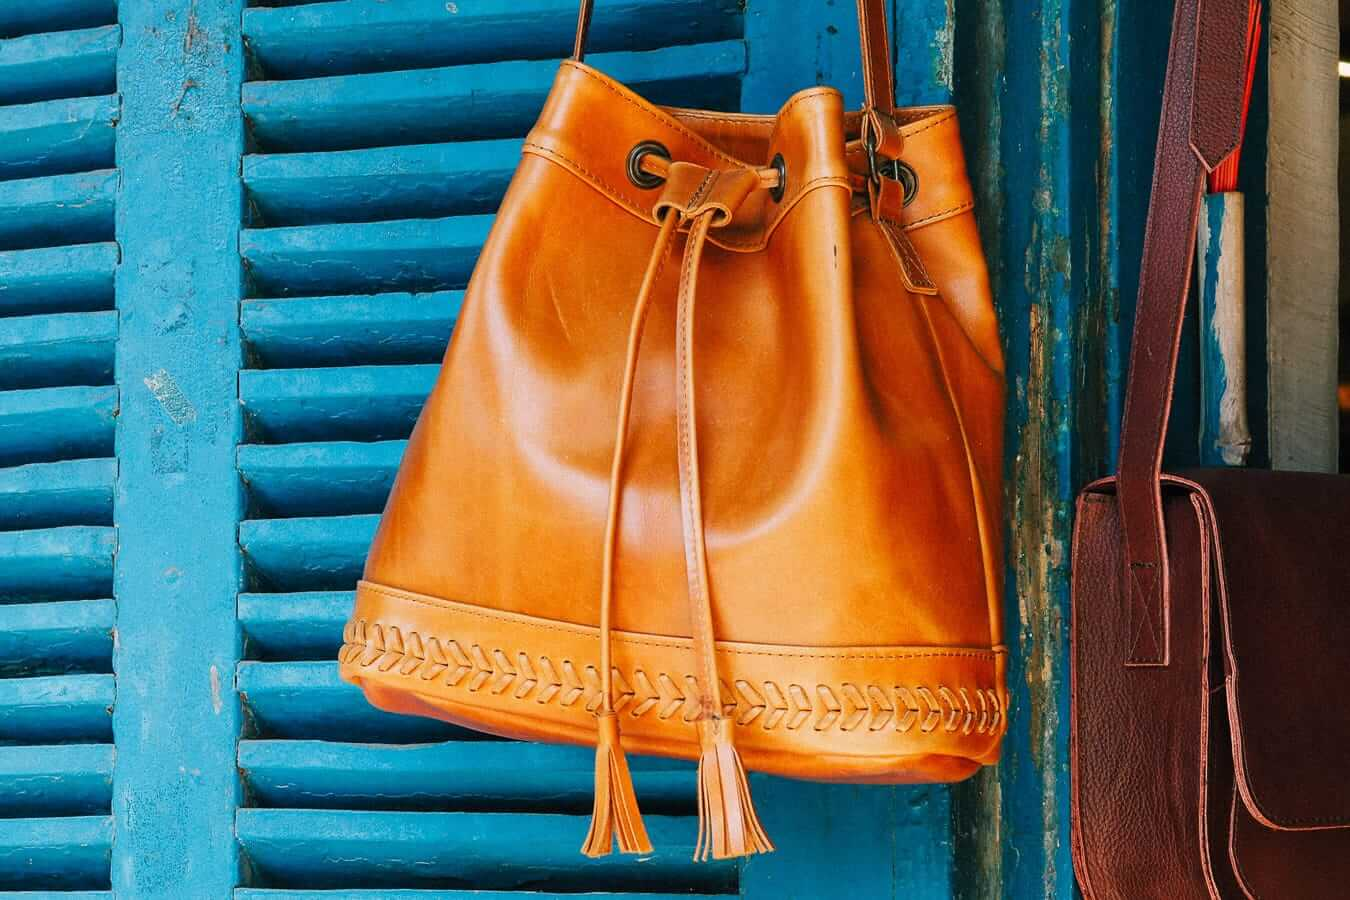 Leather bag for sale in Hoi An